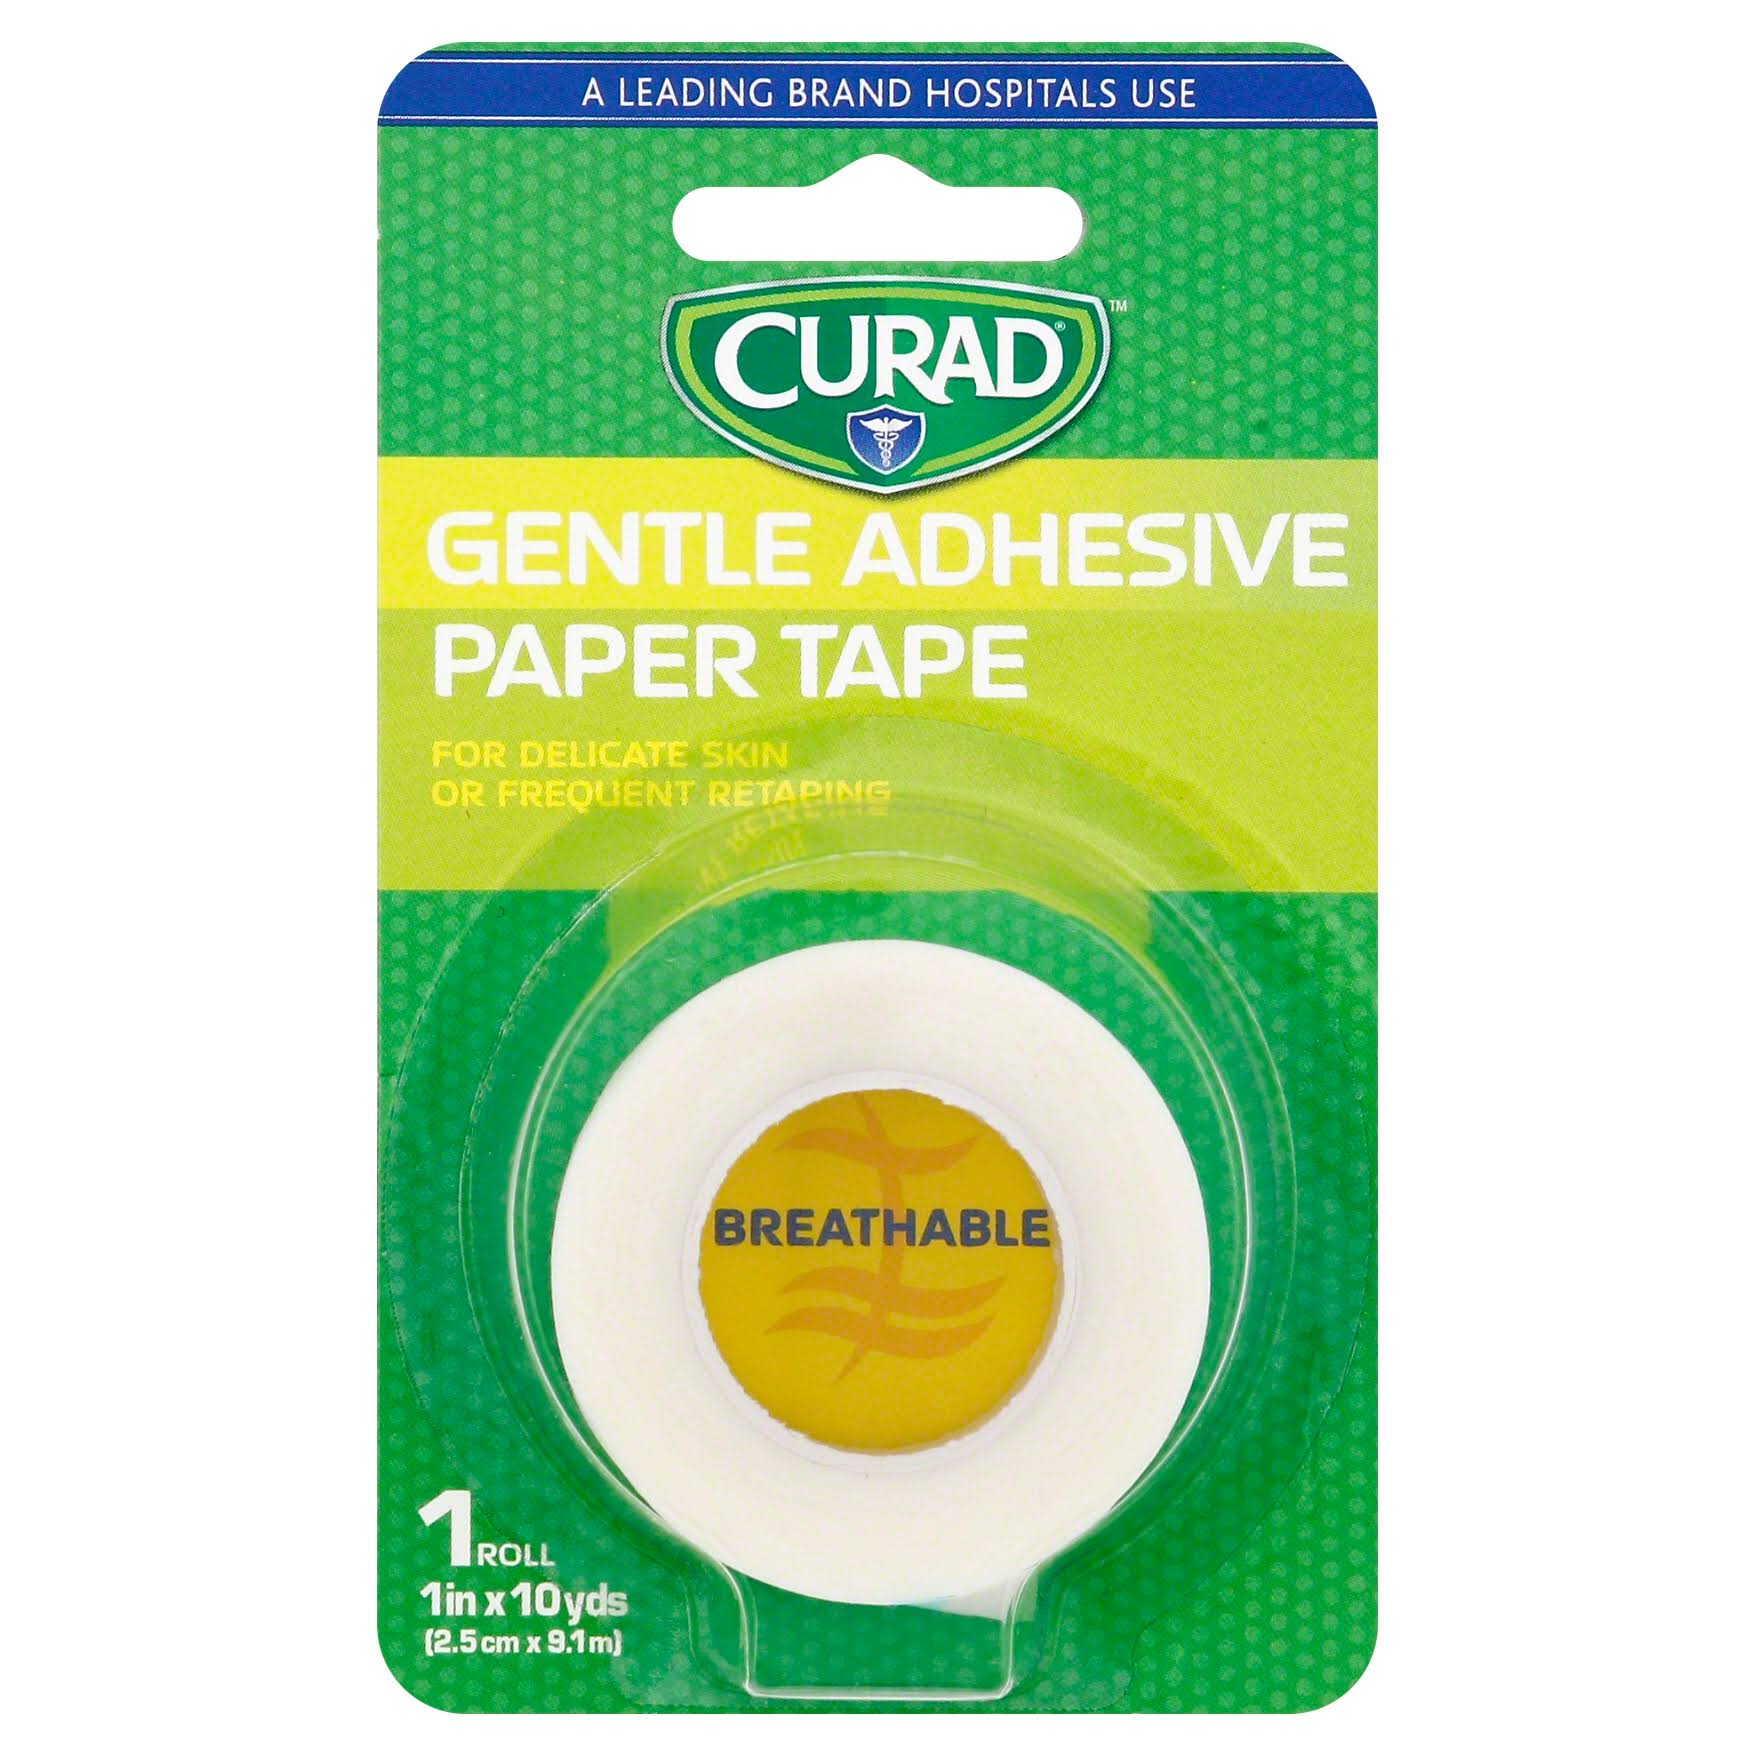 "Curad Gentle Adhesive Paper Tape - 1"" x 10yds"